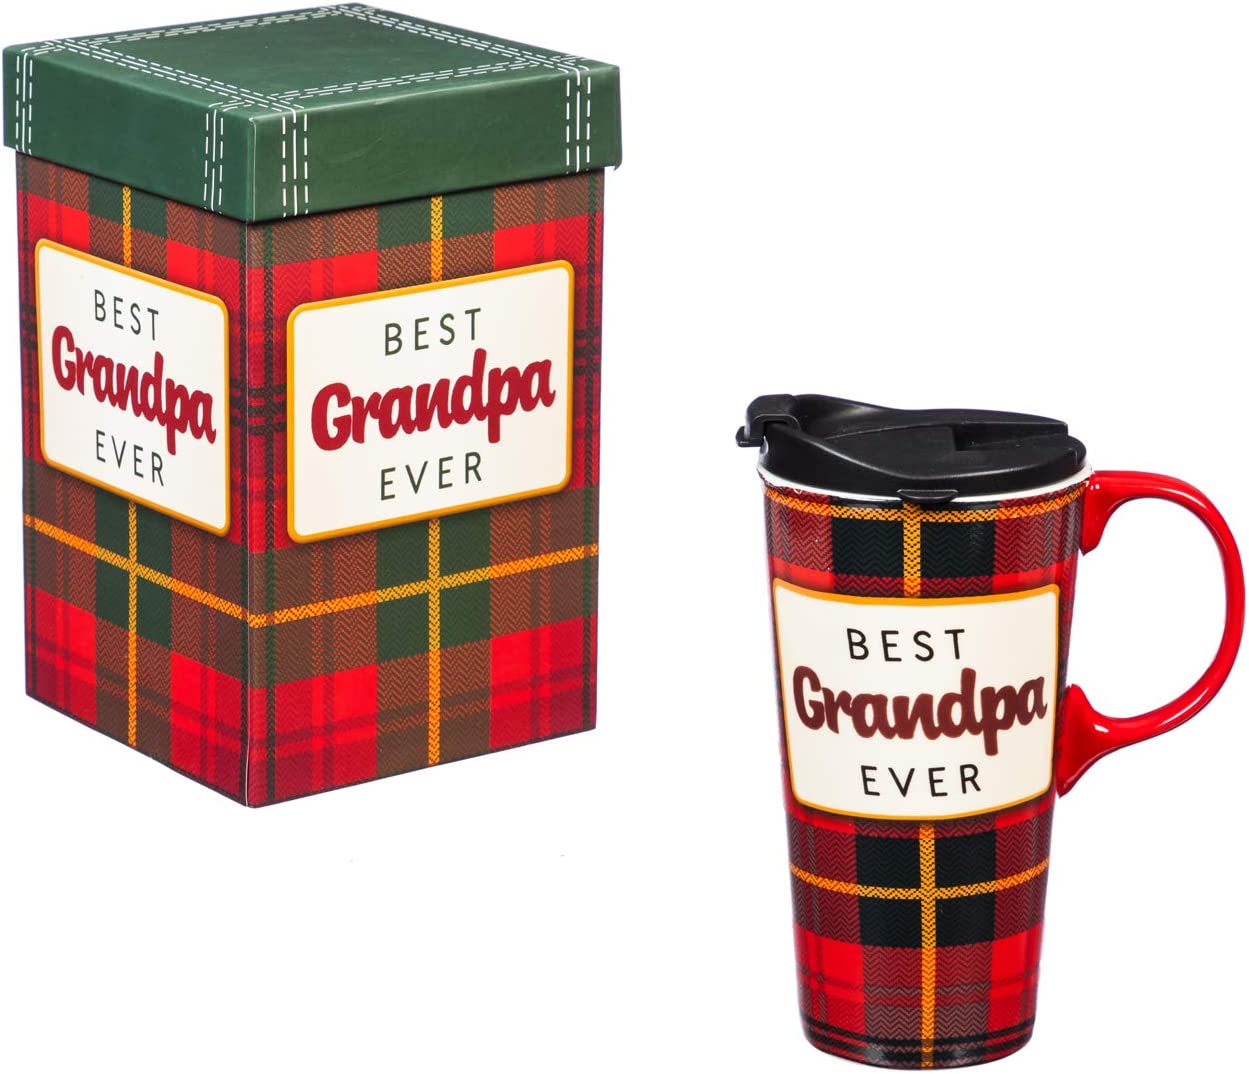 Cypress Home Beautiful Best Grandpa Ever Ceramic Travel Cup with Matching Box - 4 x 5 x 7 Inches Indoor/Outdoor home goods For Kitchens, Parties and Homes